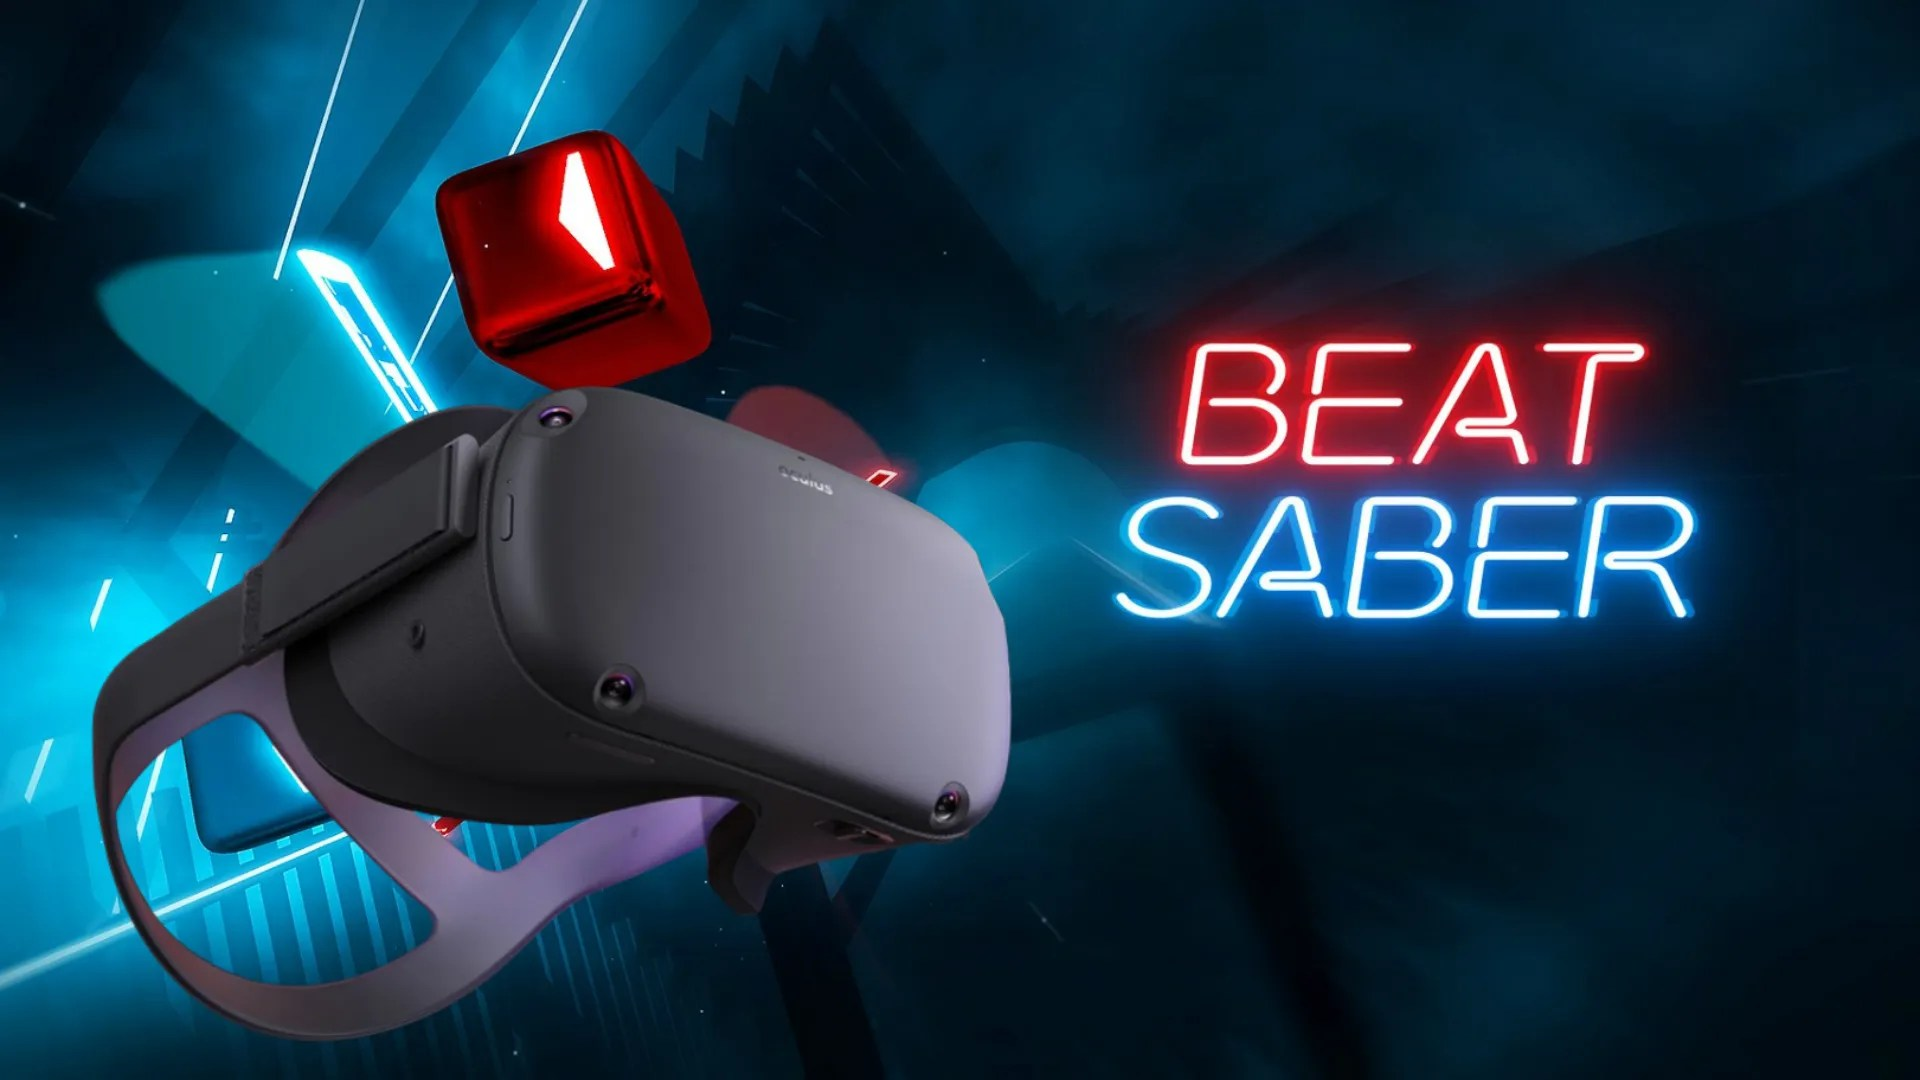 7 Ways to Get the Most Out of 'Beat Saber' on Oculus Quest